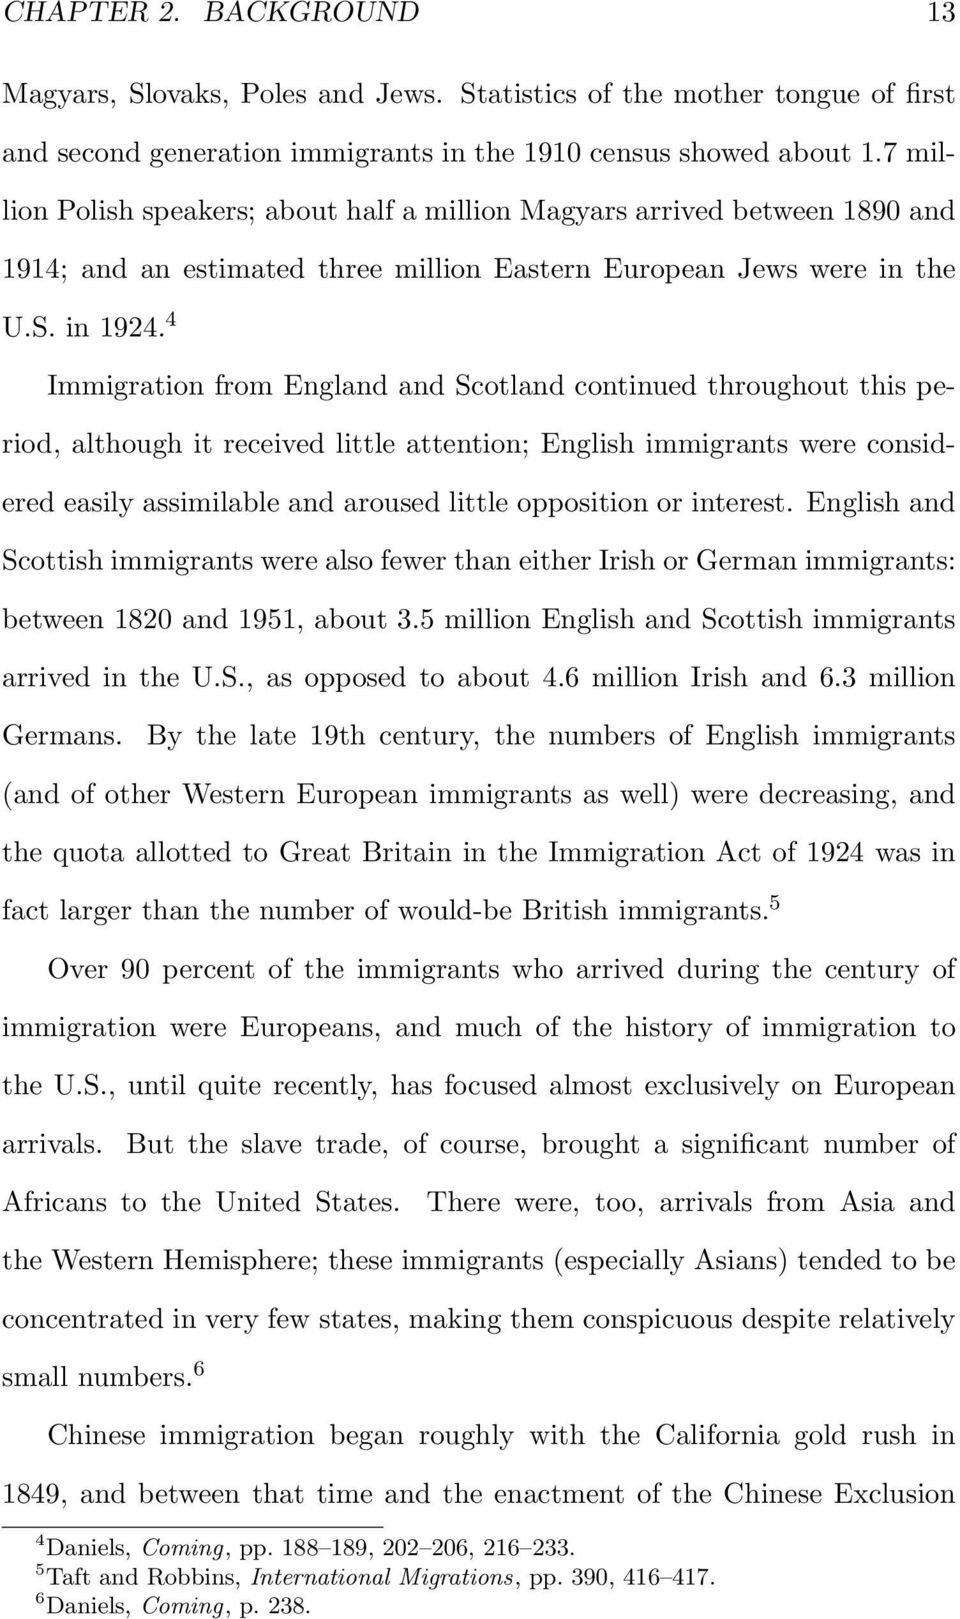 4 Immigration from England and Scotland continued throughout this period, although it received little attention; English immigrants were considered easily assimilable and aroused little opposition or